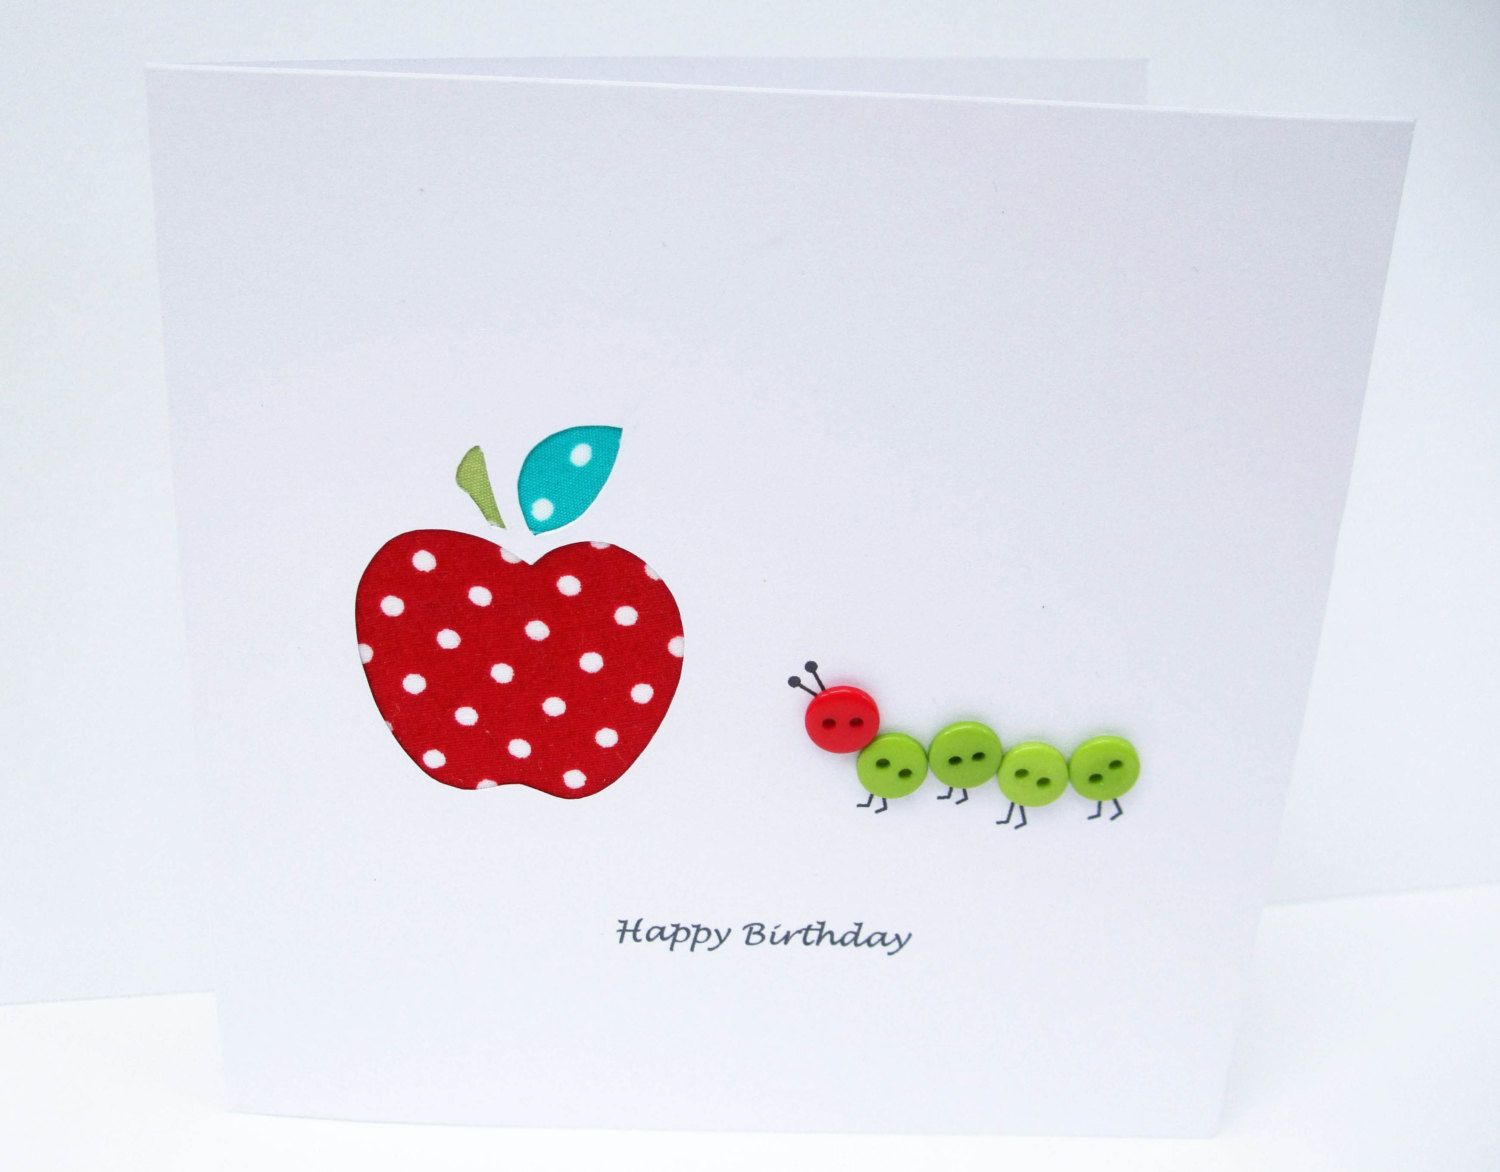 Send online birthday cards uk free greeting card maker festive handmade greeting cards with buttons google search cards to 7c662e78ed25ea0c8dffe6dd58cd3bab 248894316889246236 send online birthday cards uk kristyandbryce Choice Image